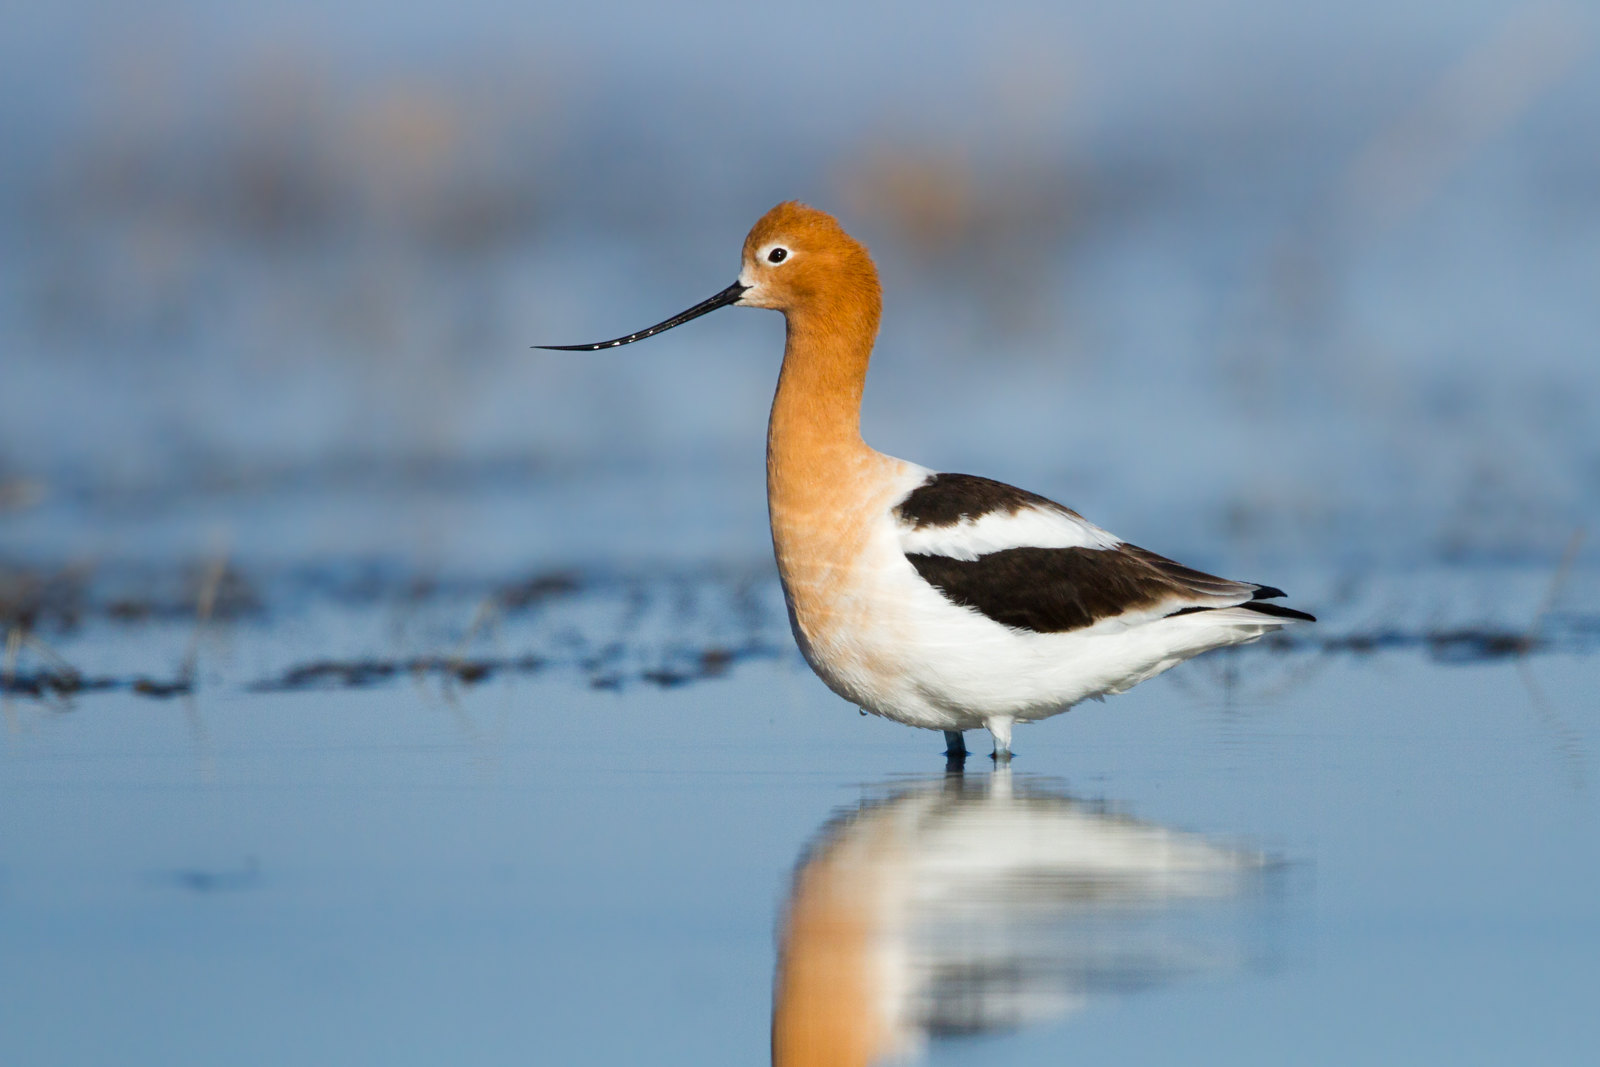 One of my targets to see the stunning American Avocet. This photo was taken by Ilya Povalyaev and was legally embedded from the photographer's Flickr account. All rights reserved by Ilya Povalyaev.